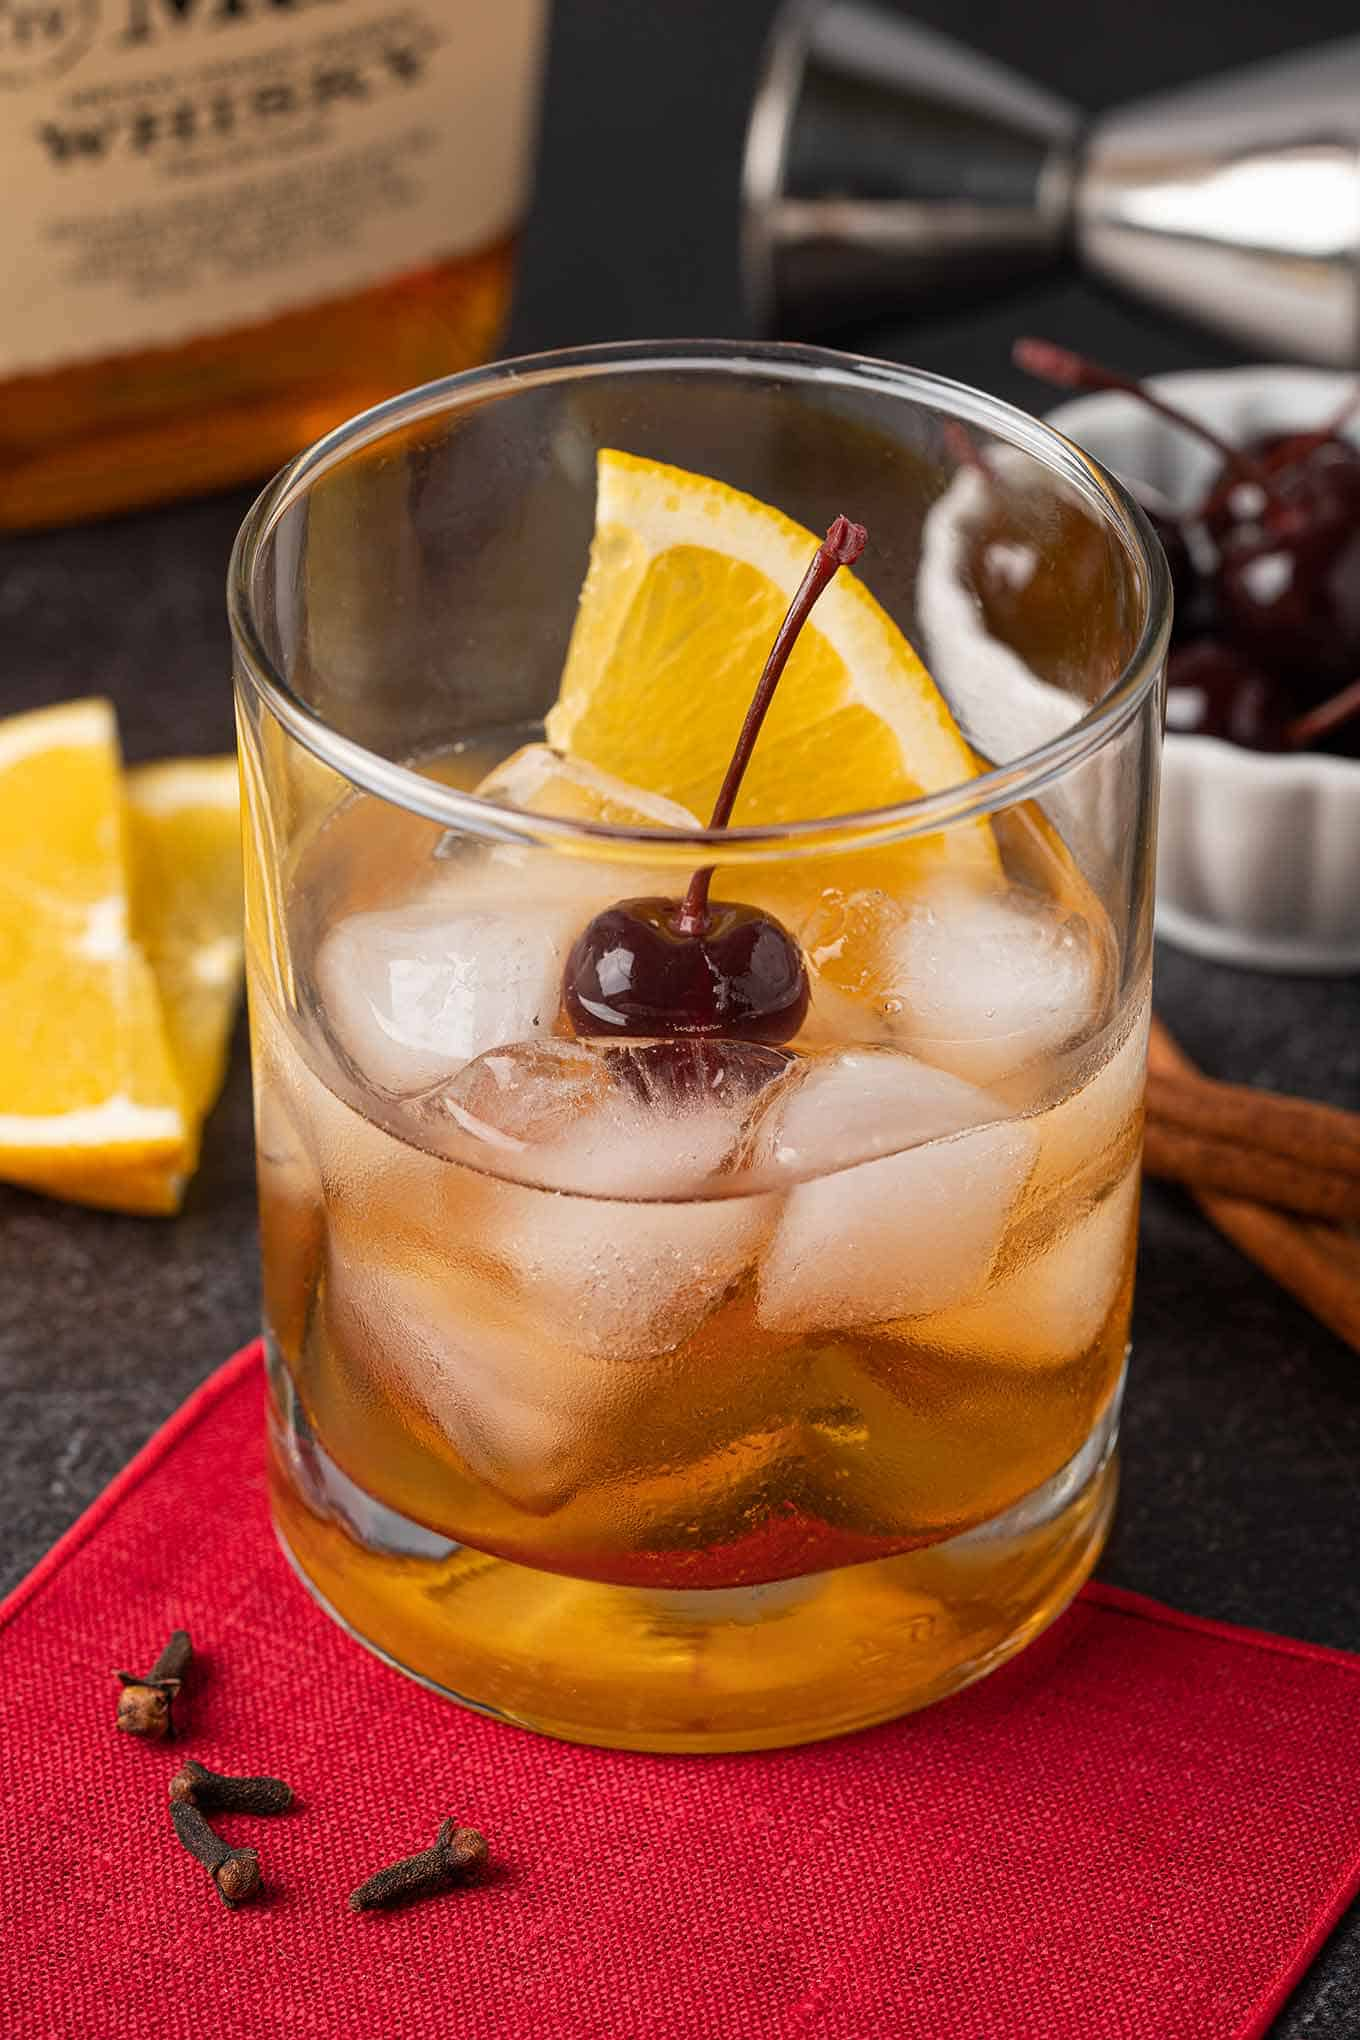 Old Fashioned cocktail garnished with an orange slice and a cherry, bourbon bottle, orange slices and cherries in the background